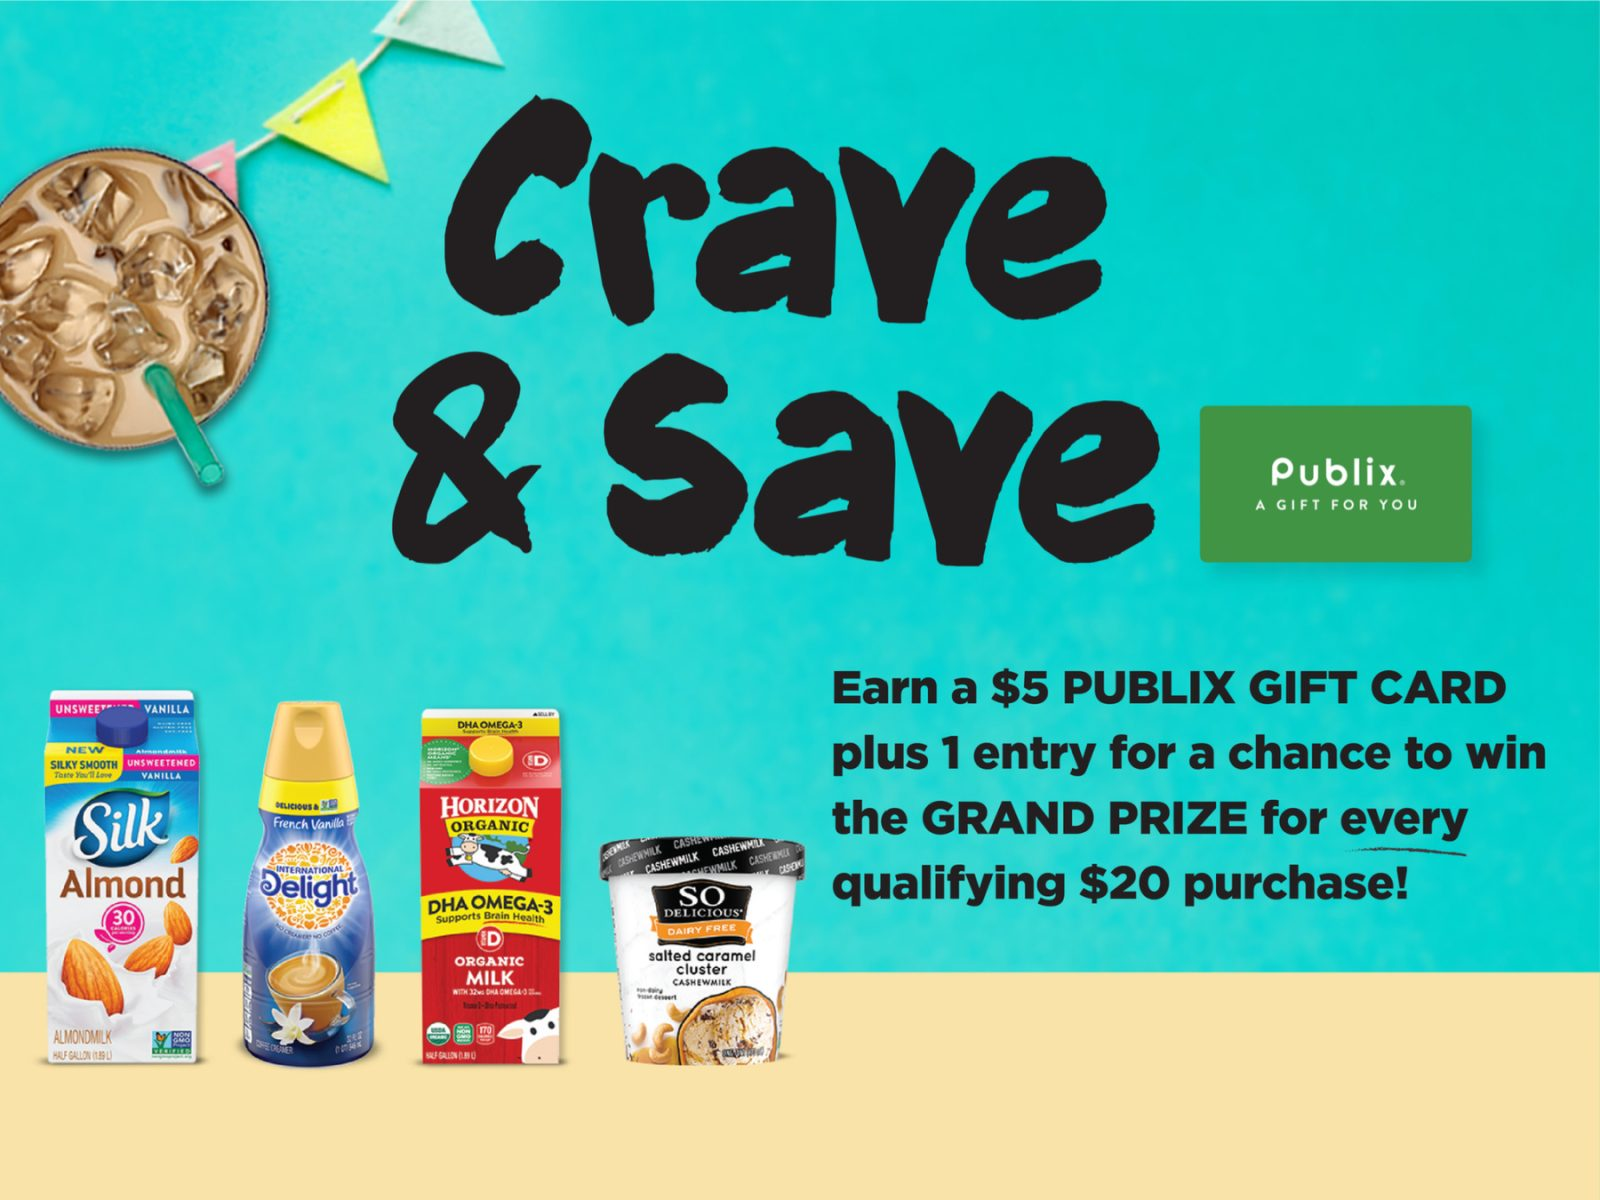 Keep Earning Publix Gift Cards With The Crave & Save Program on I Heart Publix